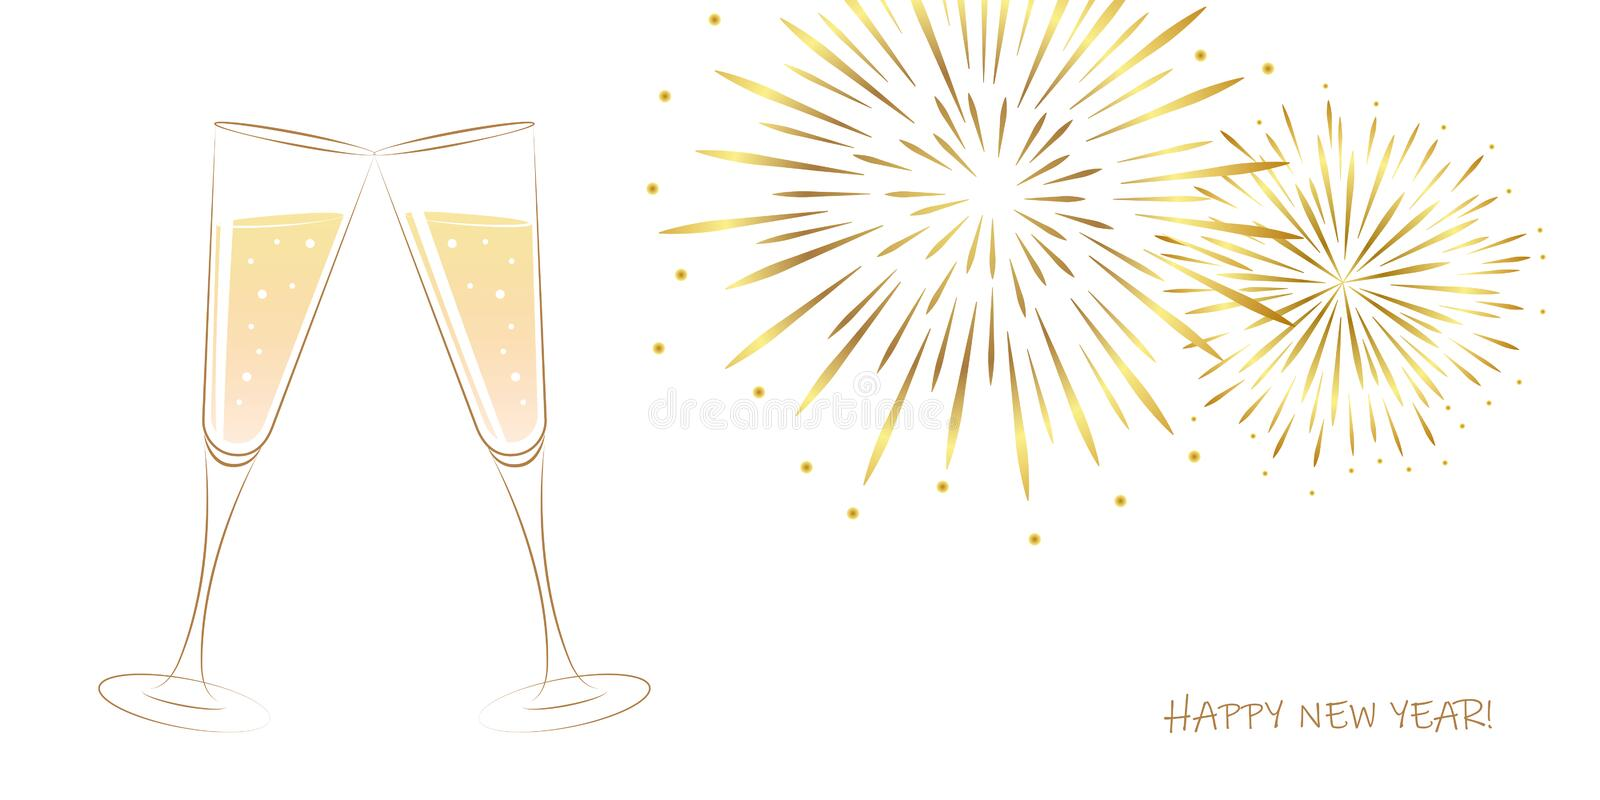 New Year golden fireworks and champagne glasses on a white background royalty free illustration